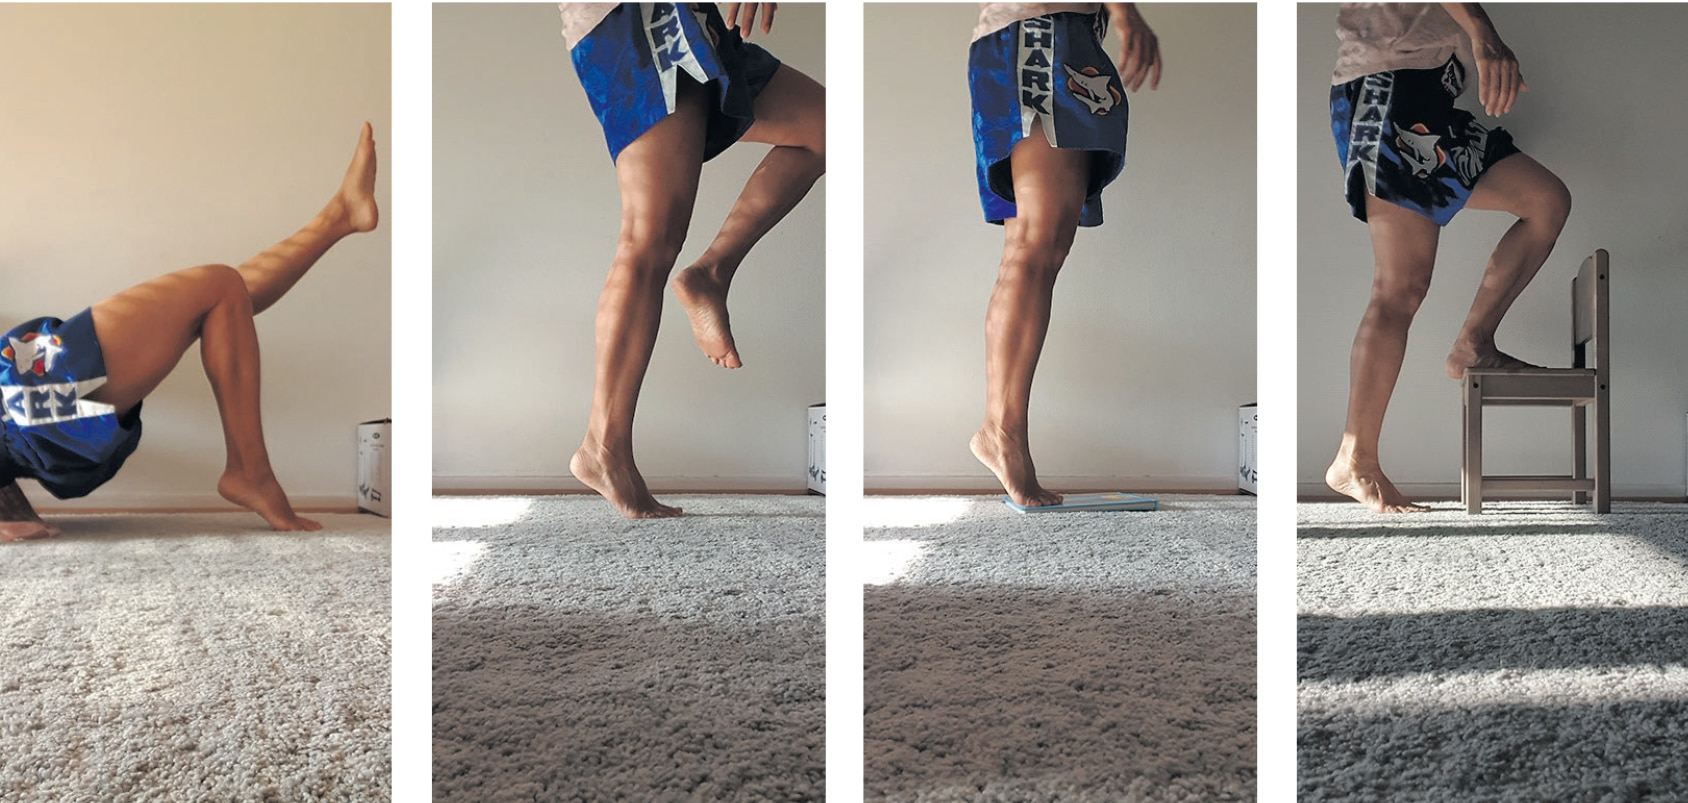 Strengthening the calf muscles